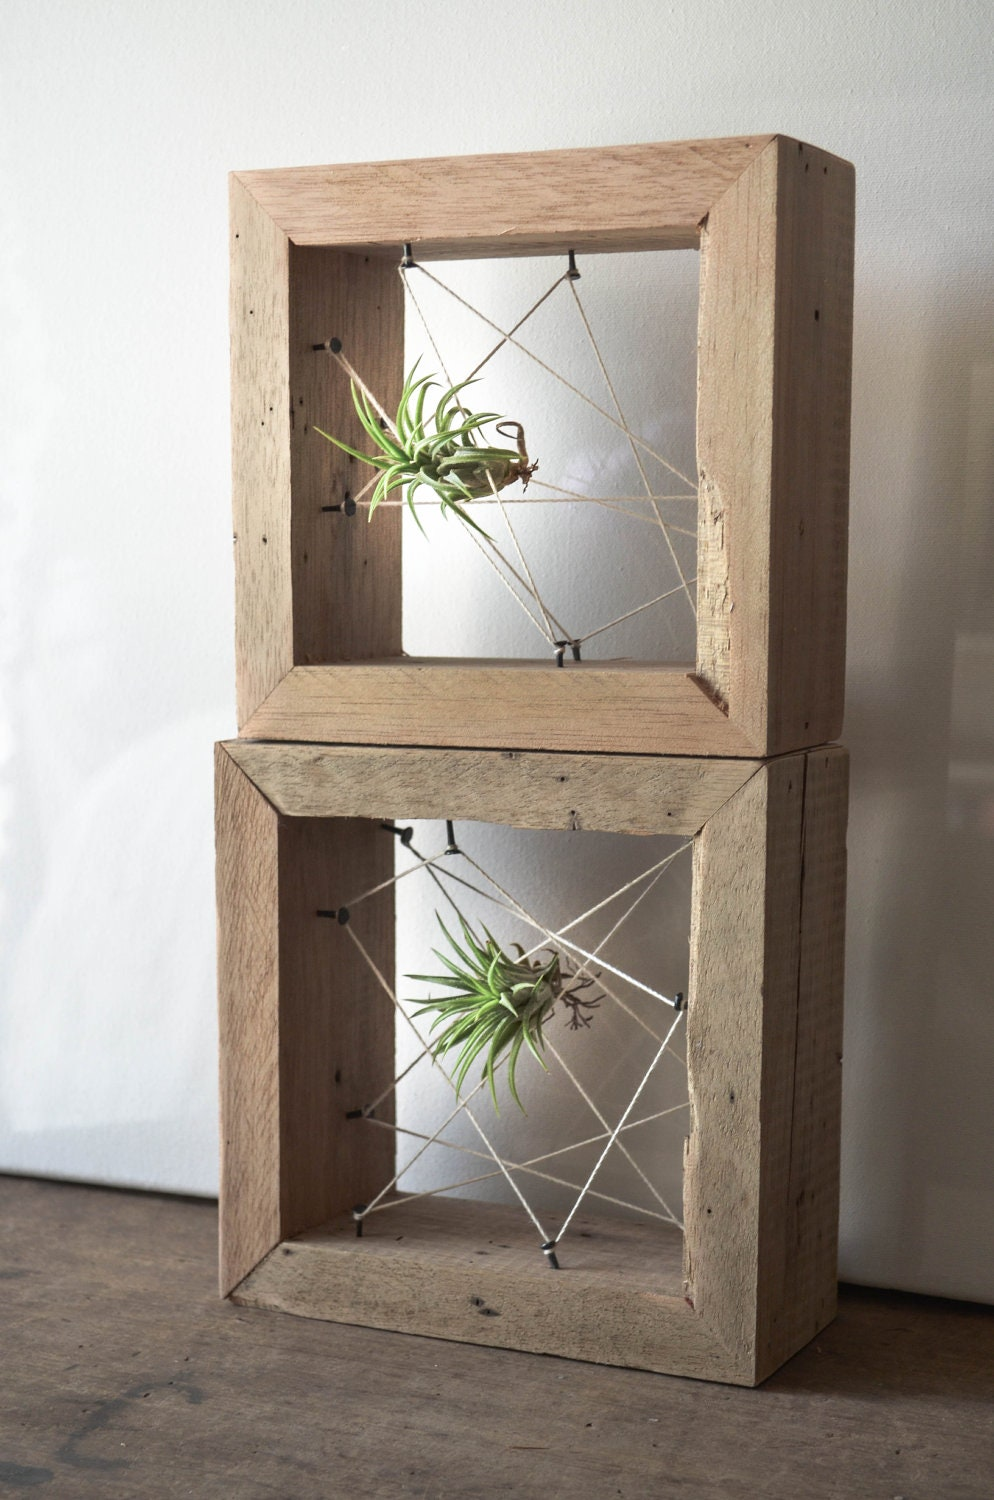 Rustic Reclaimed Recycled Salvaged Wood Air By Triple7recycled